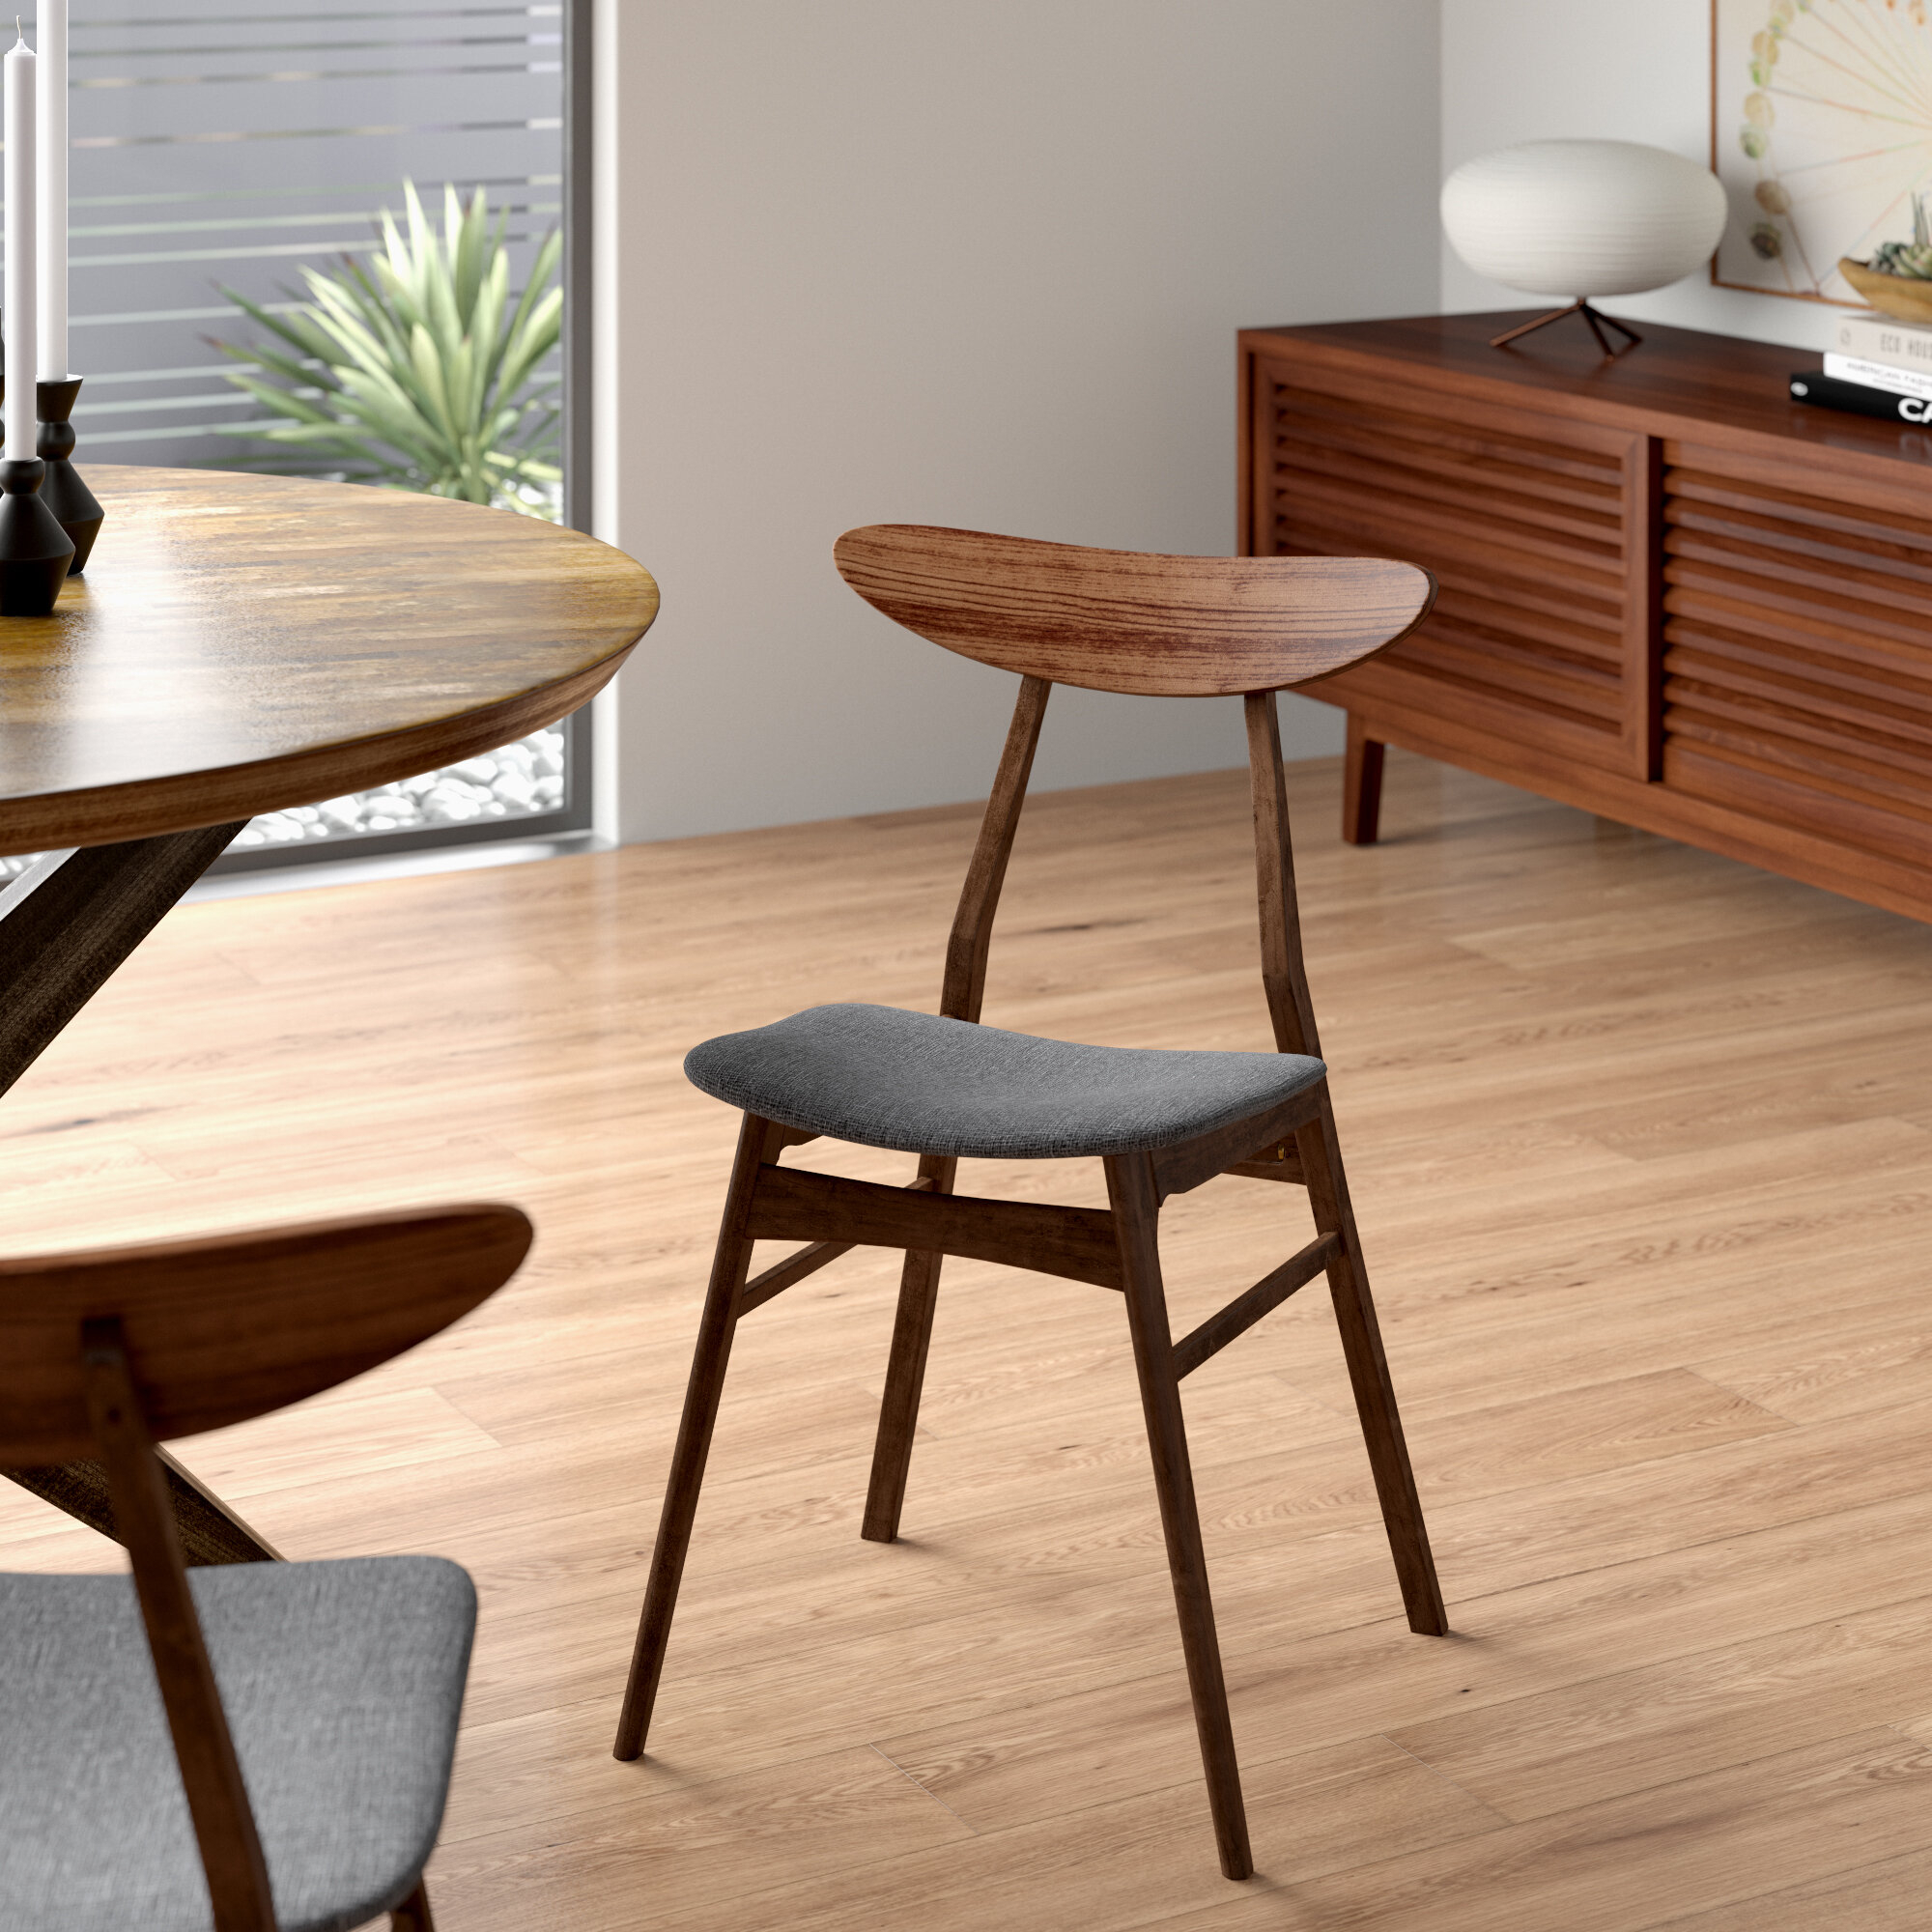 Filton Solid Wood Dining Chair With Filton Barrel Chairs (View 5 of 15)